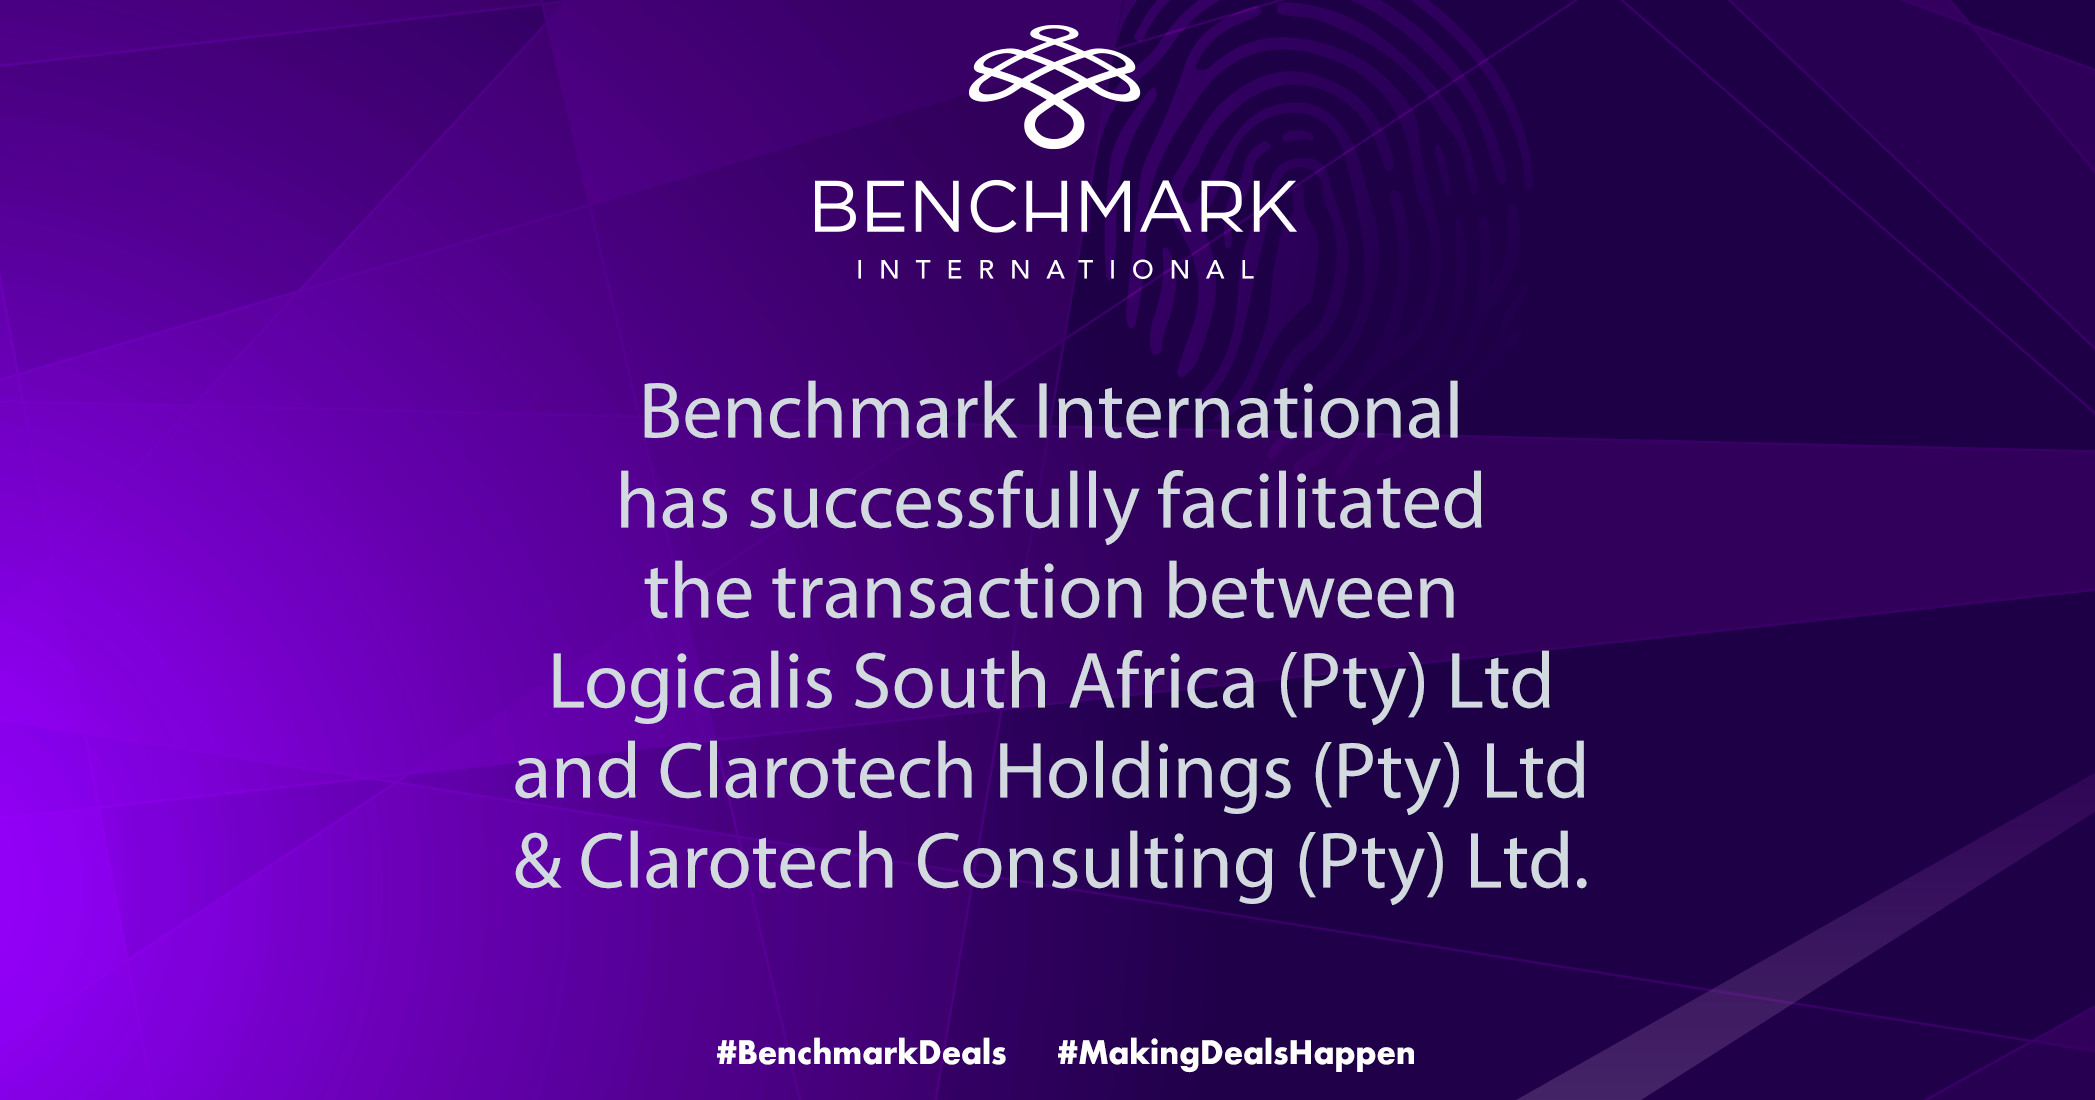 Benchmark Internationalhas successfully facilitatedthe transaction betweenLogicalis South Africa (Pty) Ltdand Clarotech Holdings (Pty) Ltd& Clarotech Consulting (Pty) Ltd.